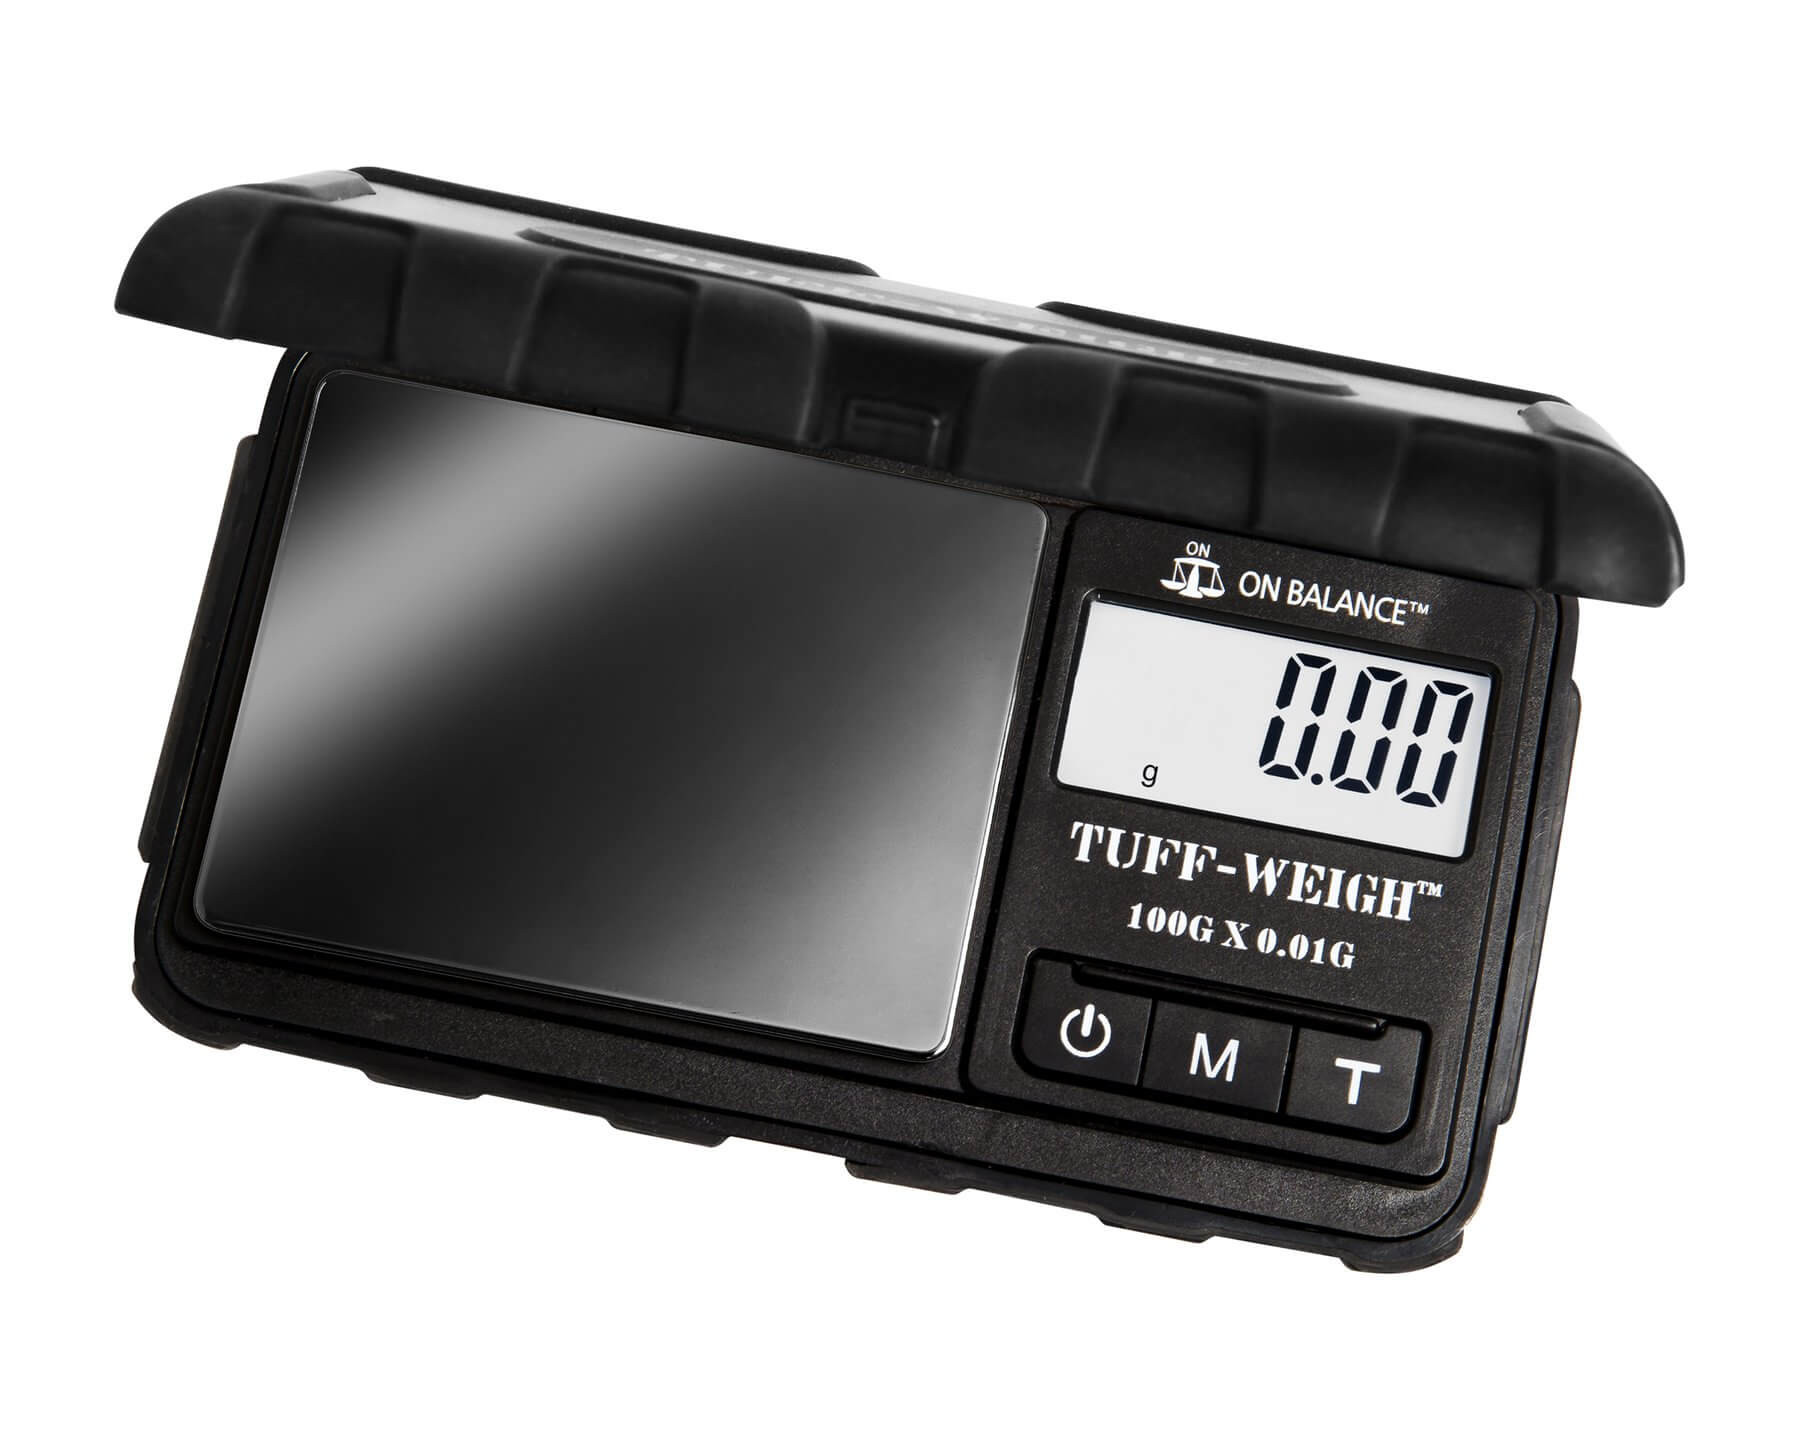 On Balance TUF-100 Tuff Weigh Pocket Scale (100g x 0.01g) - Black